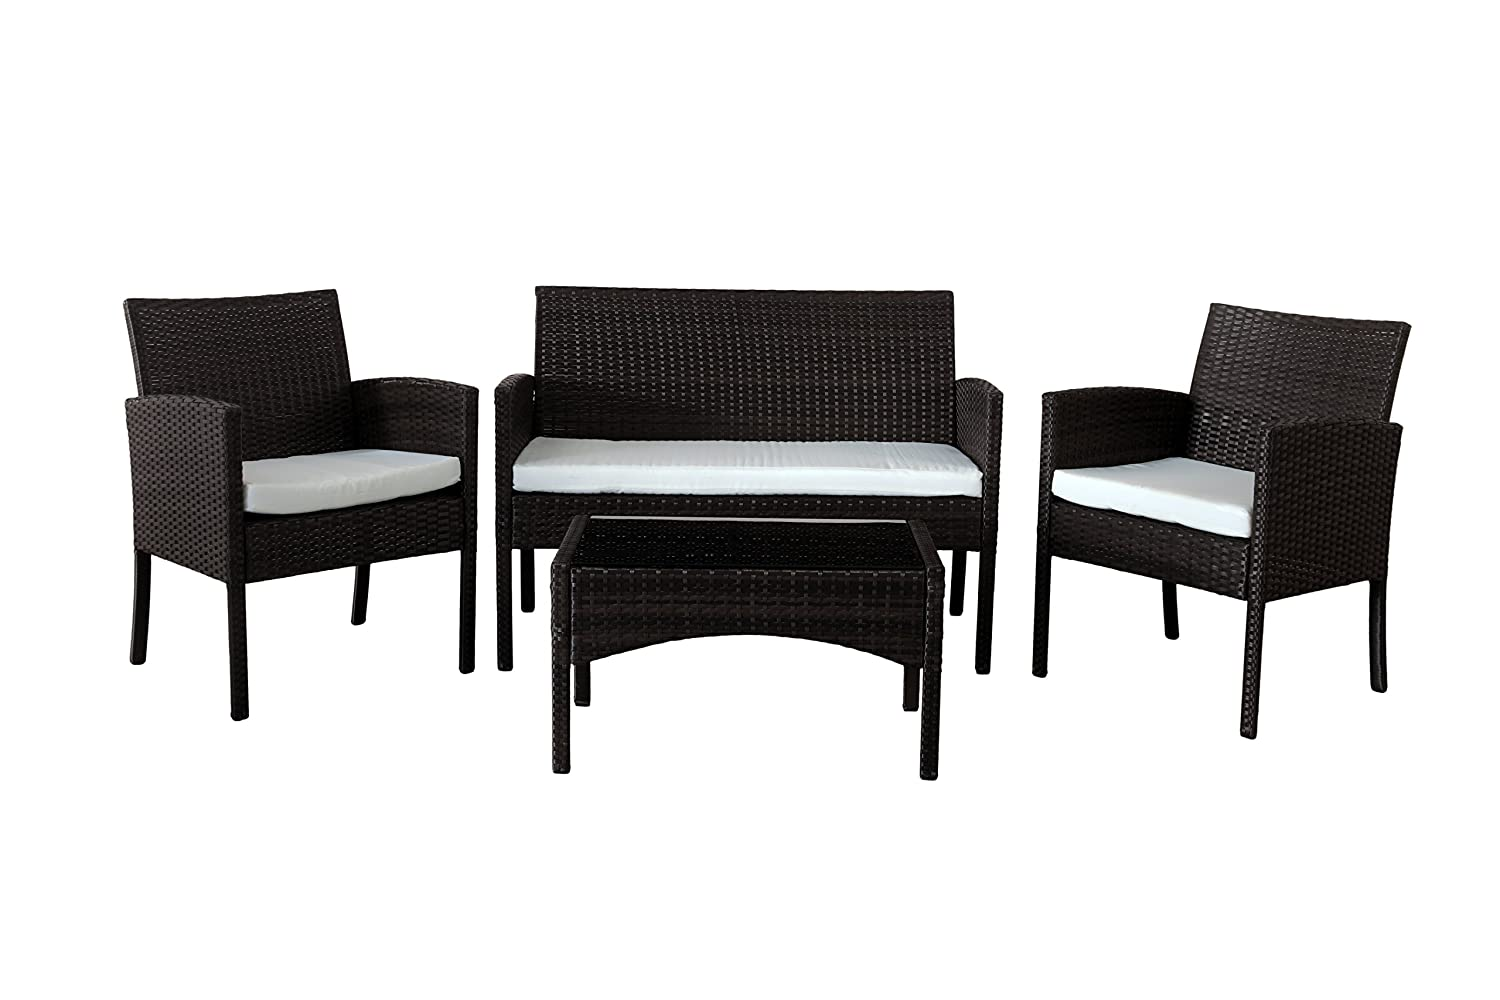 Comfy Living Rattan Garden Furniture Set Patio Funiture 4 Peice Set in Black